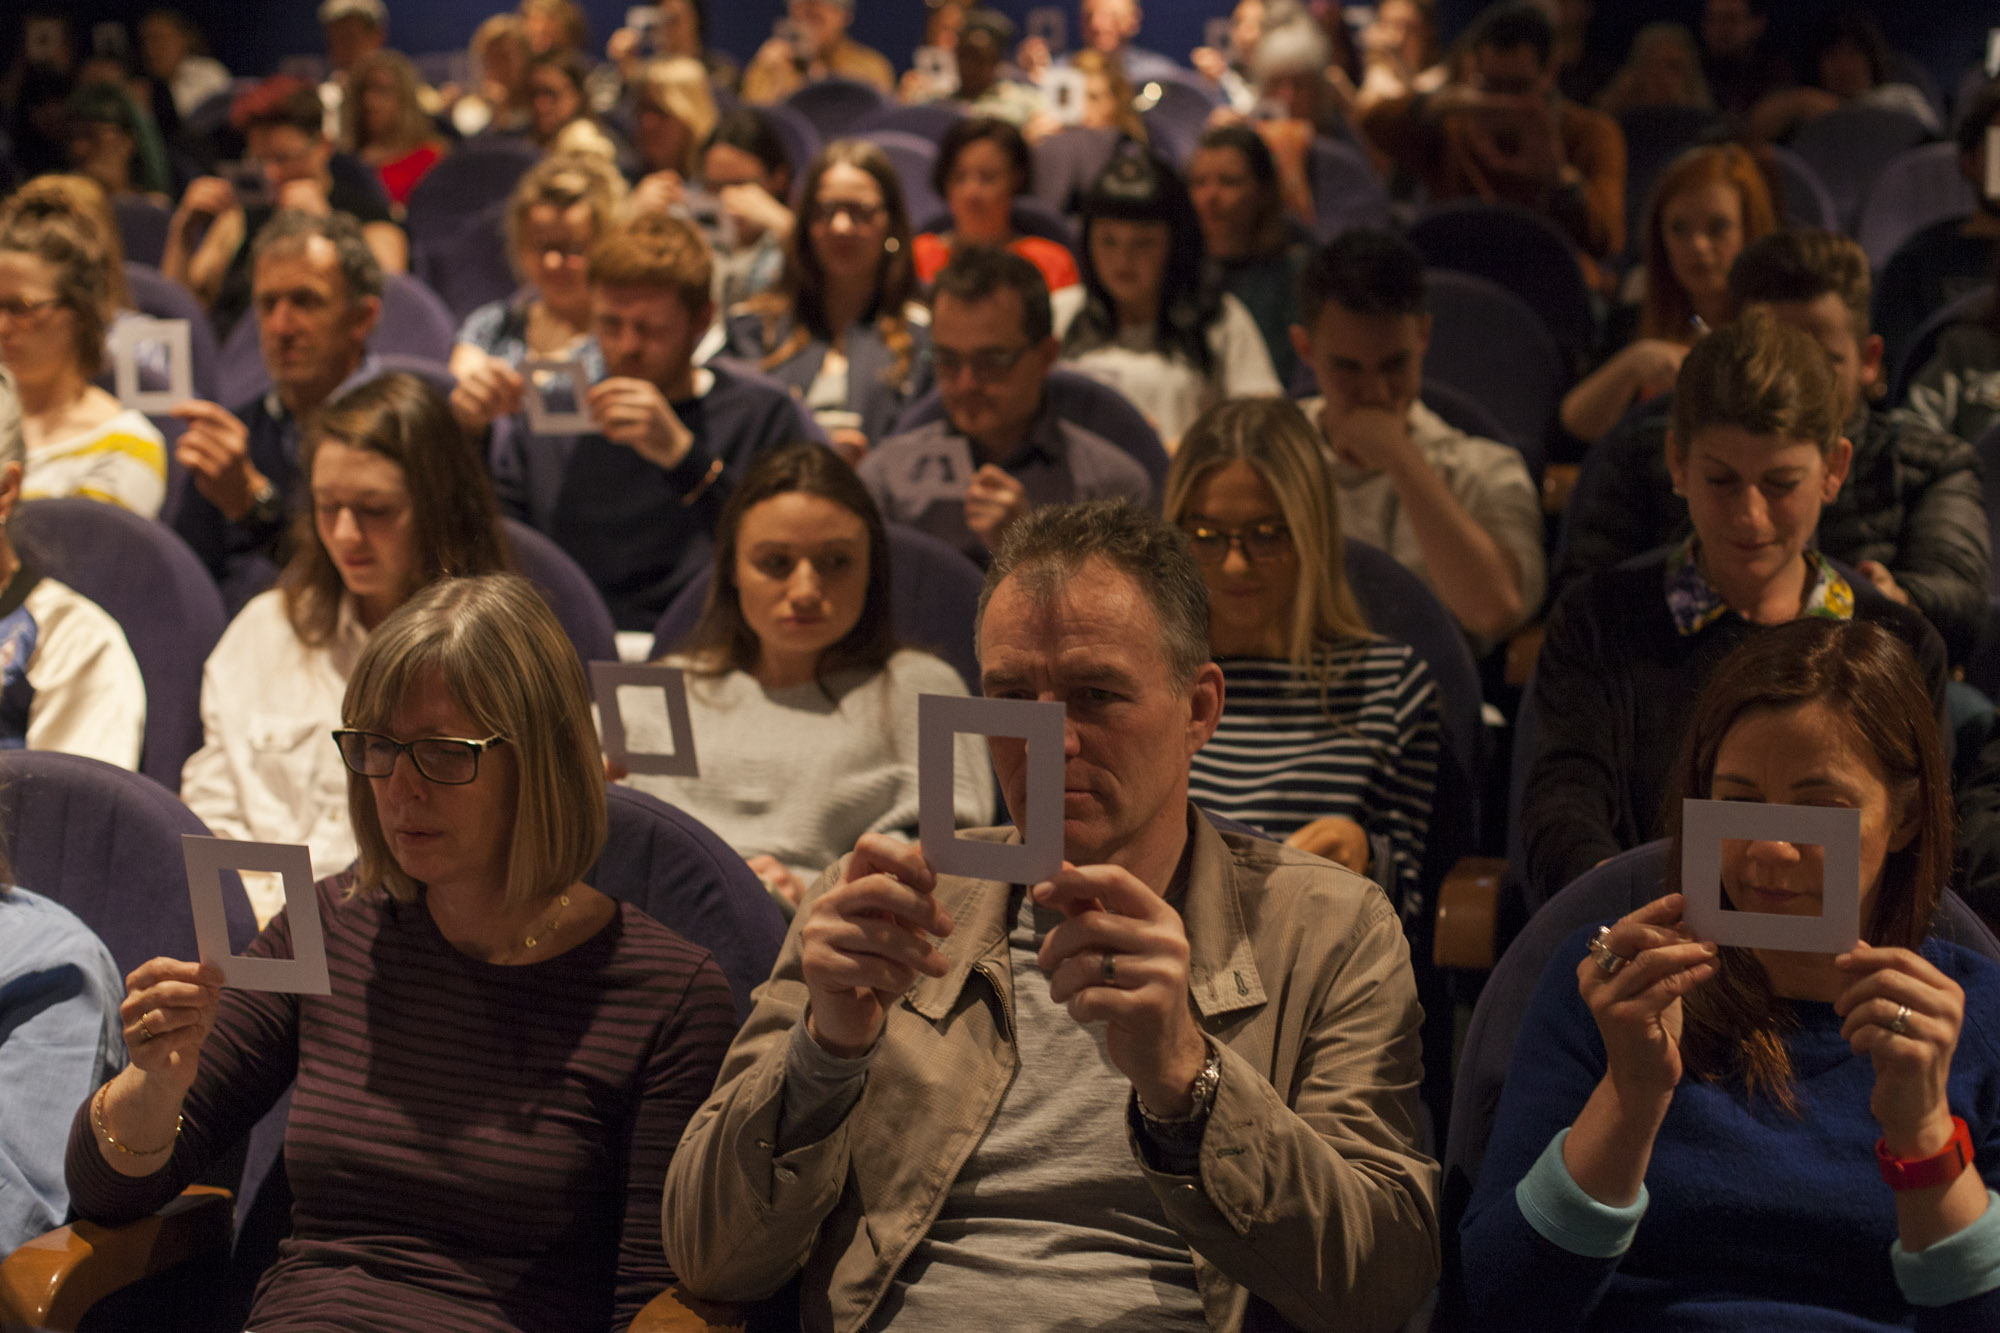 room of people holding up photo mounts during mindfulness photography talk by ruth davey professional photographer gloucestershire